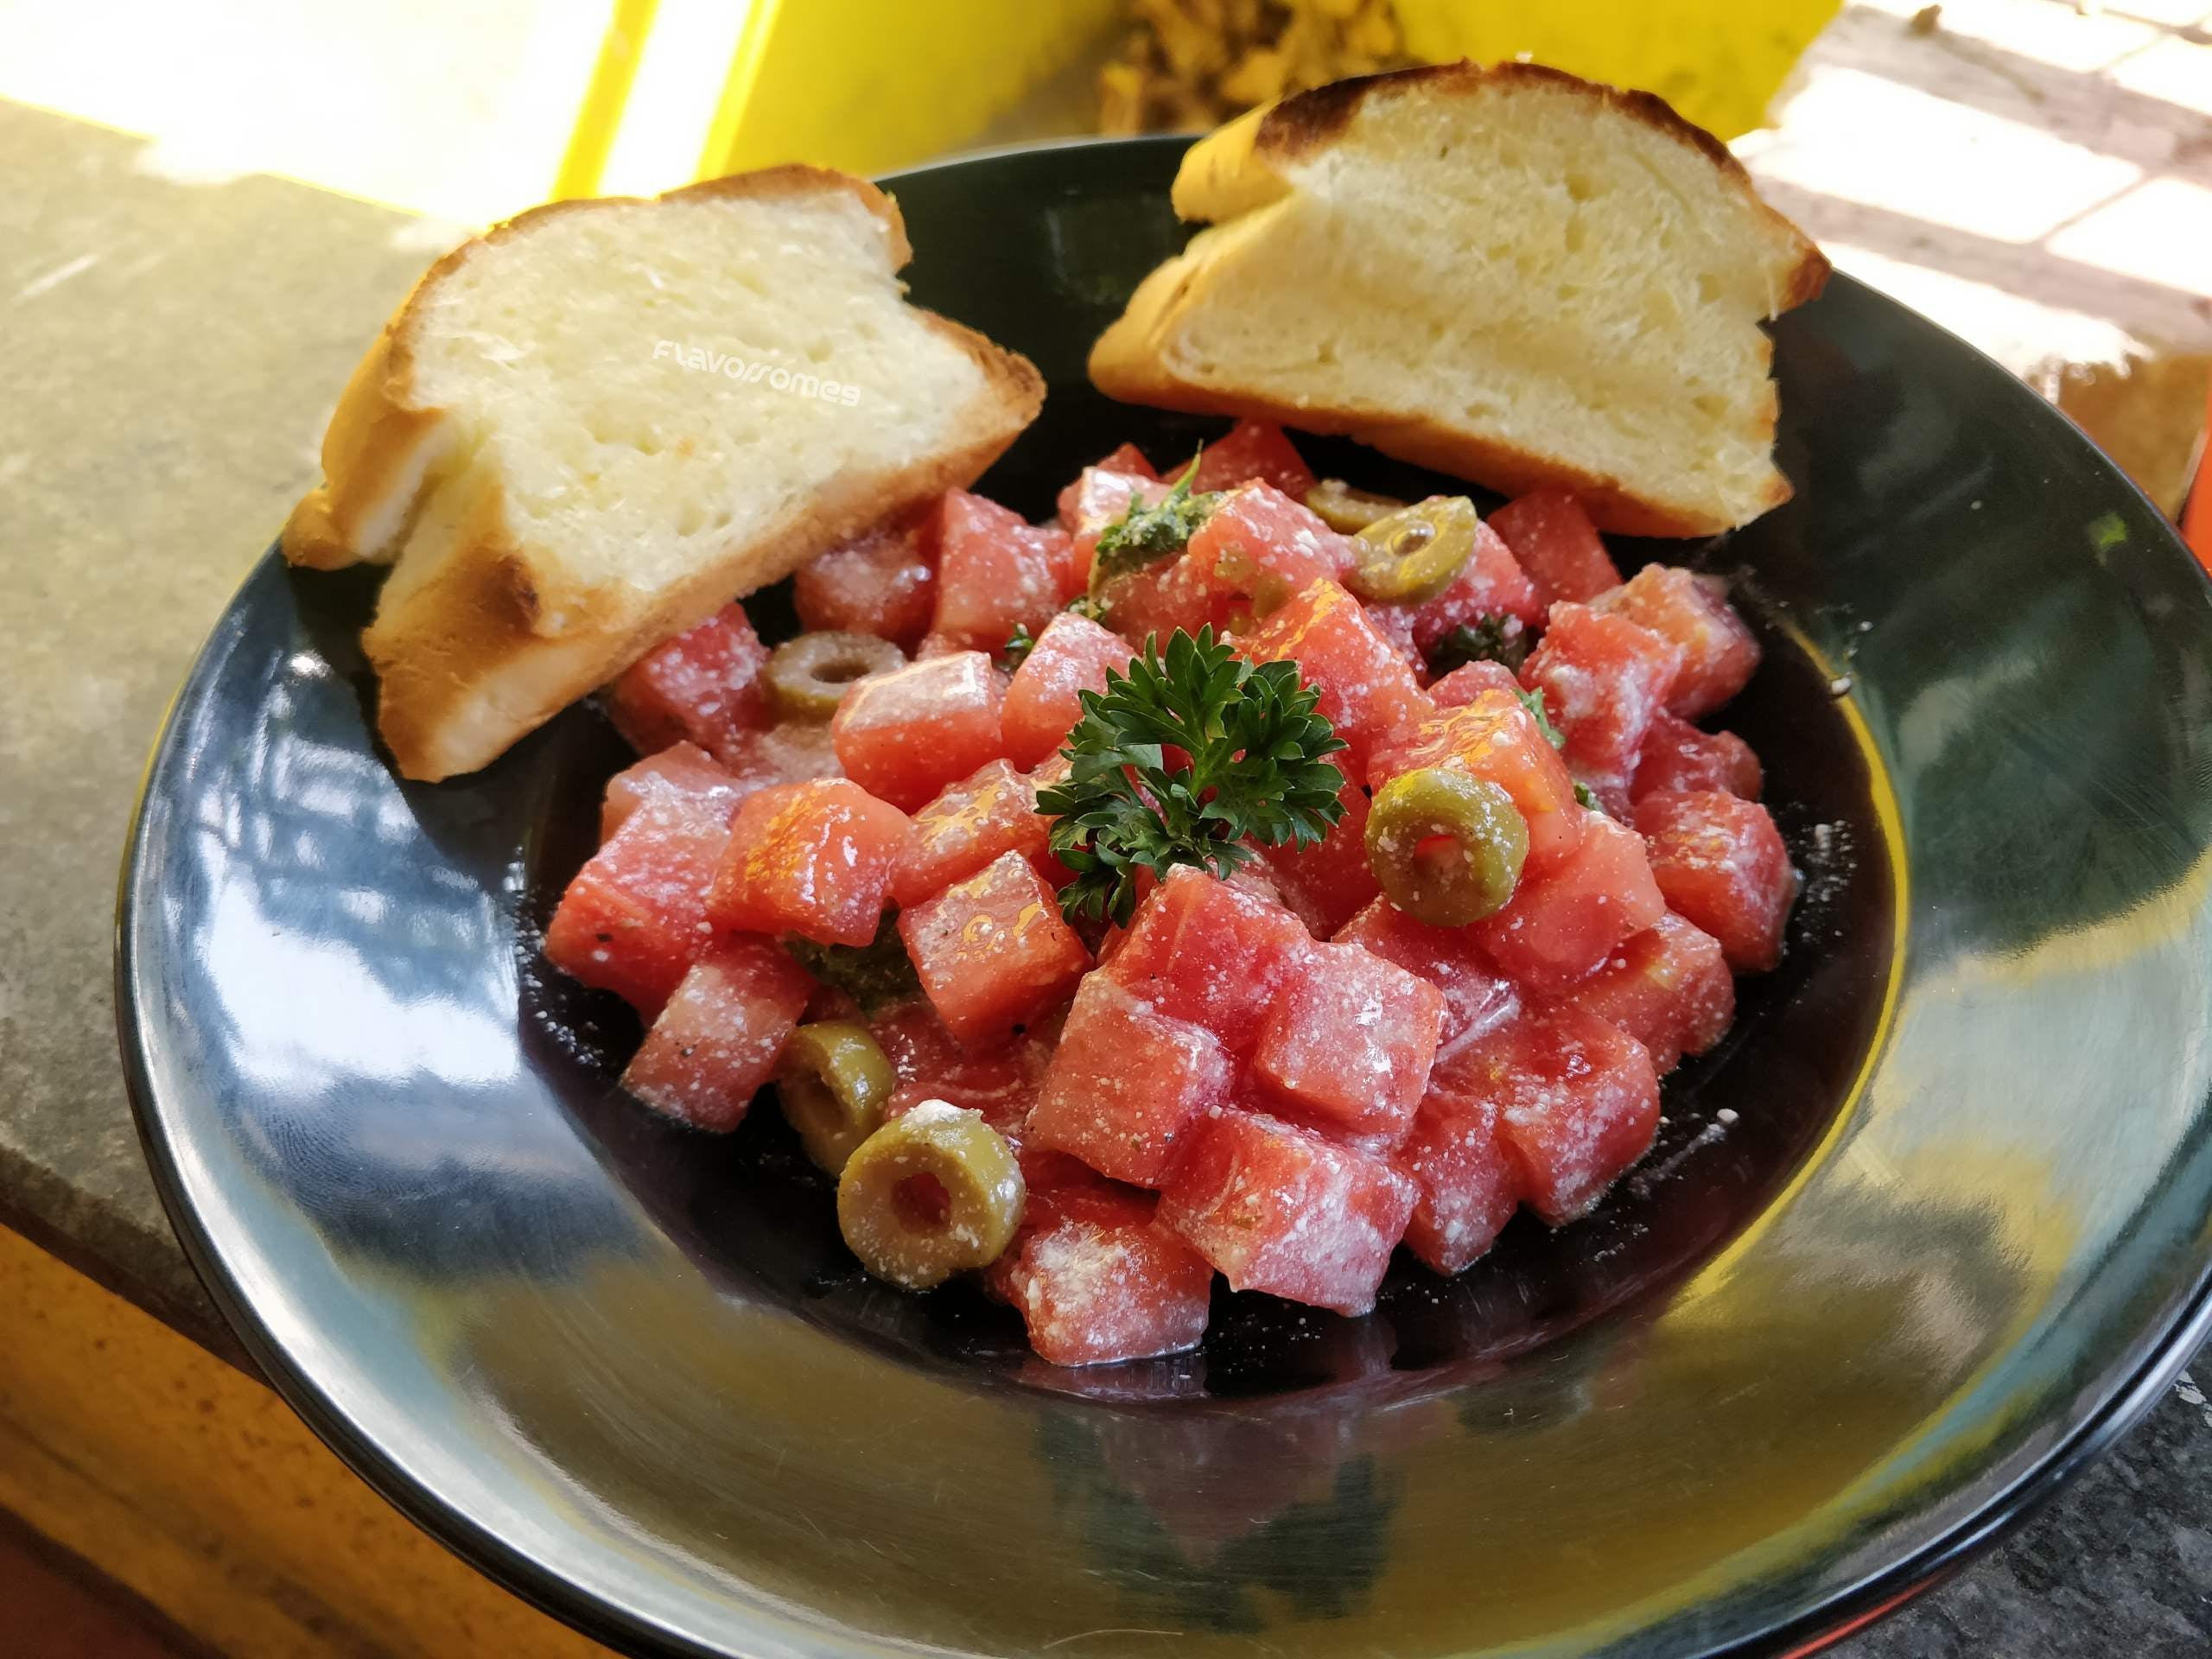 Drop By This Cafe To Have Their Special Watermelon & Feta Salad!